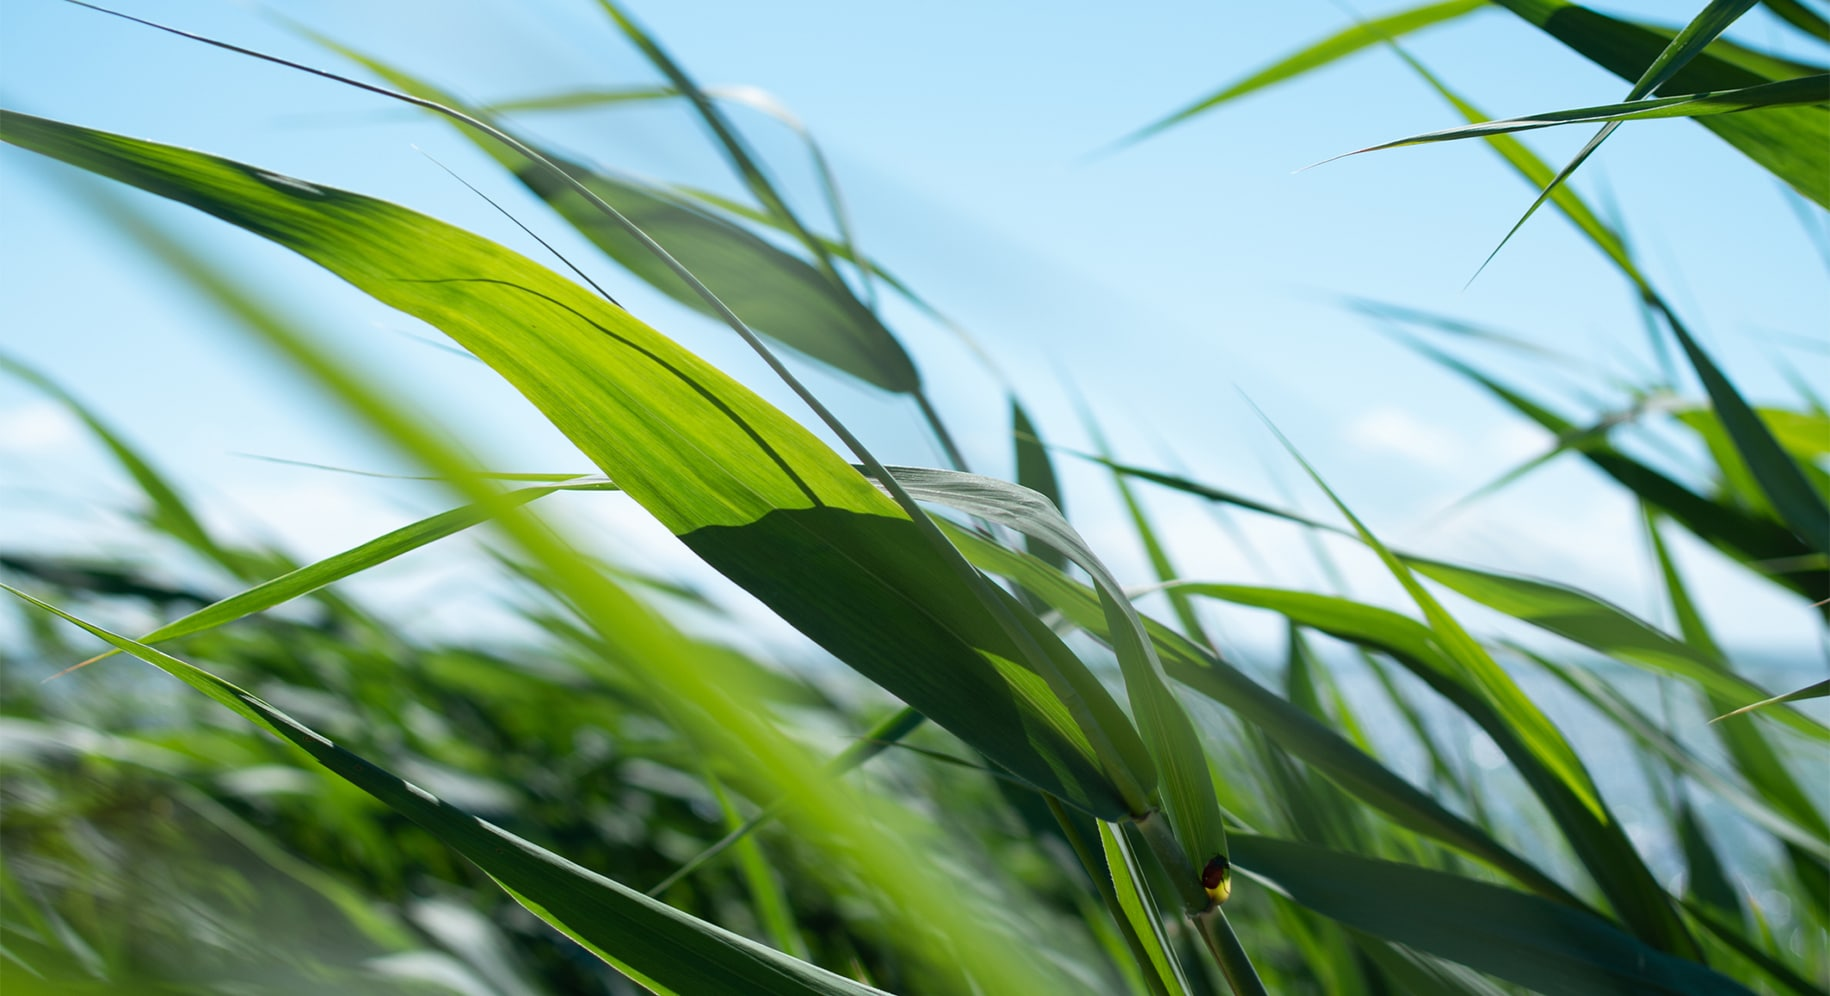 close up view of blades of grass